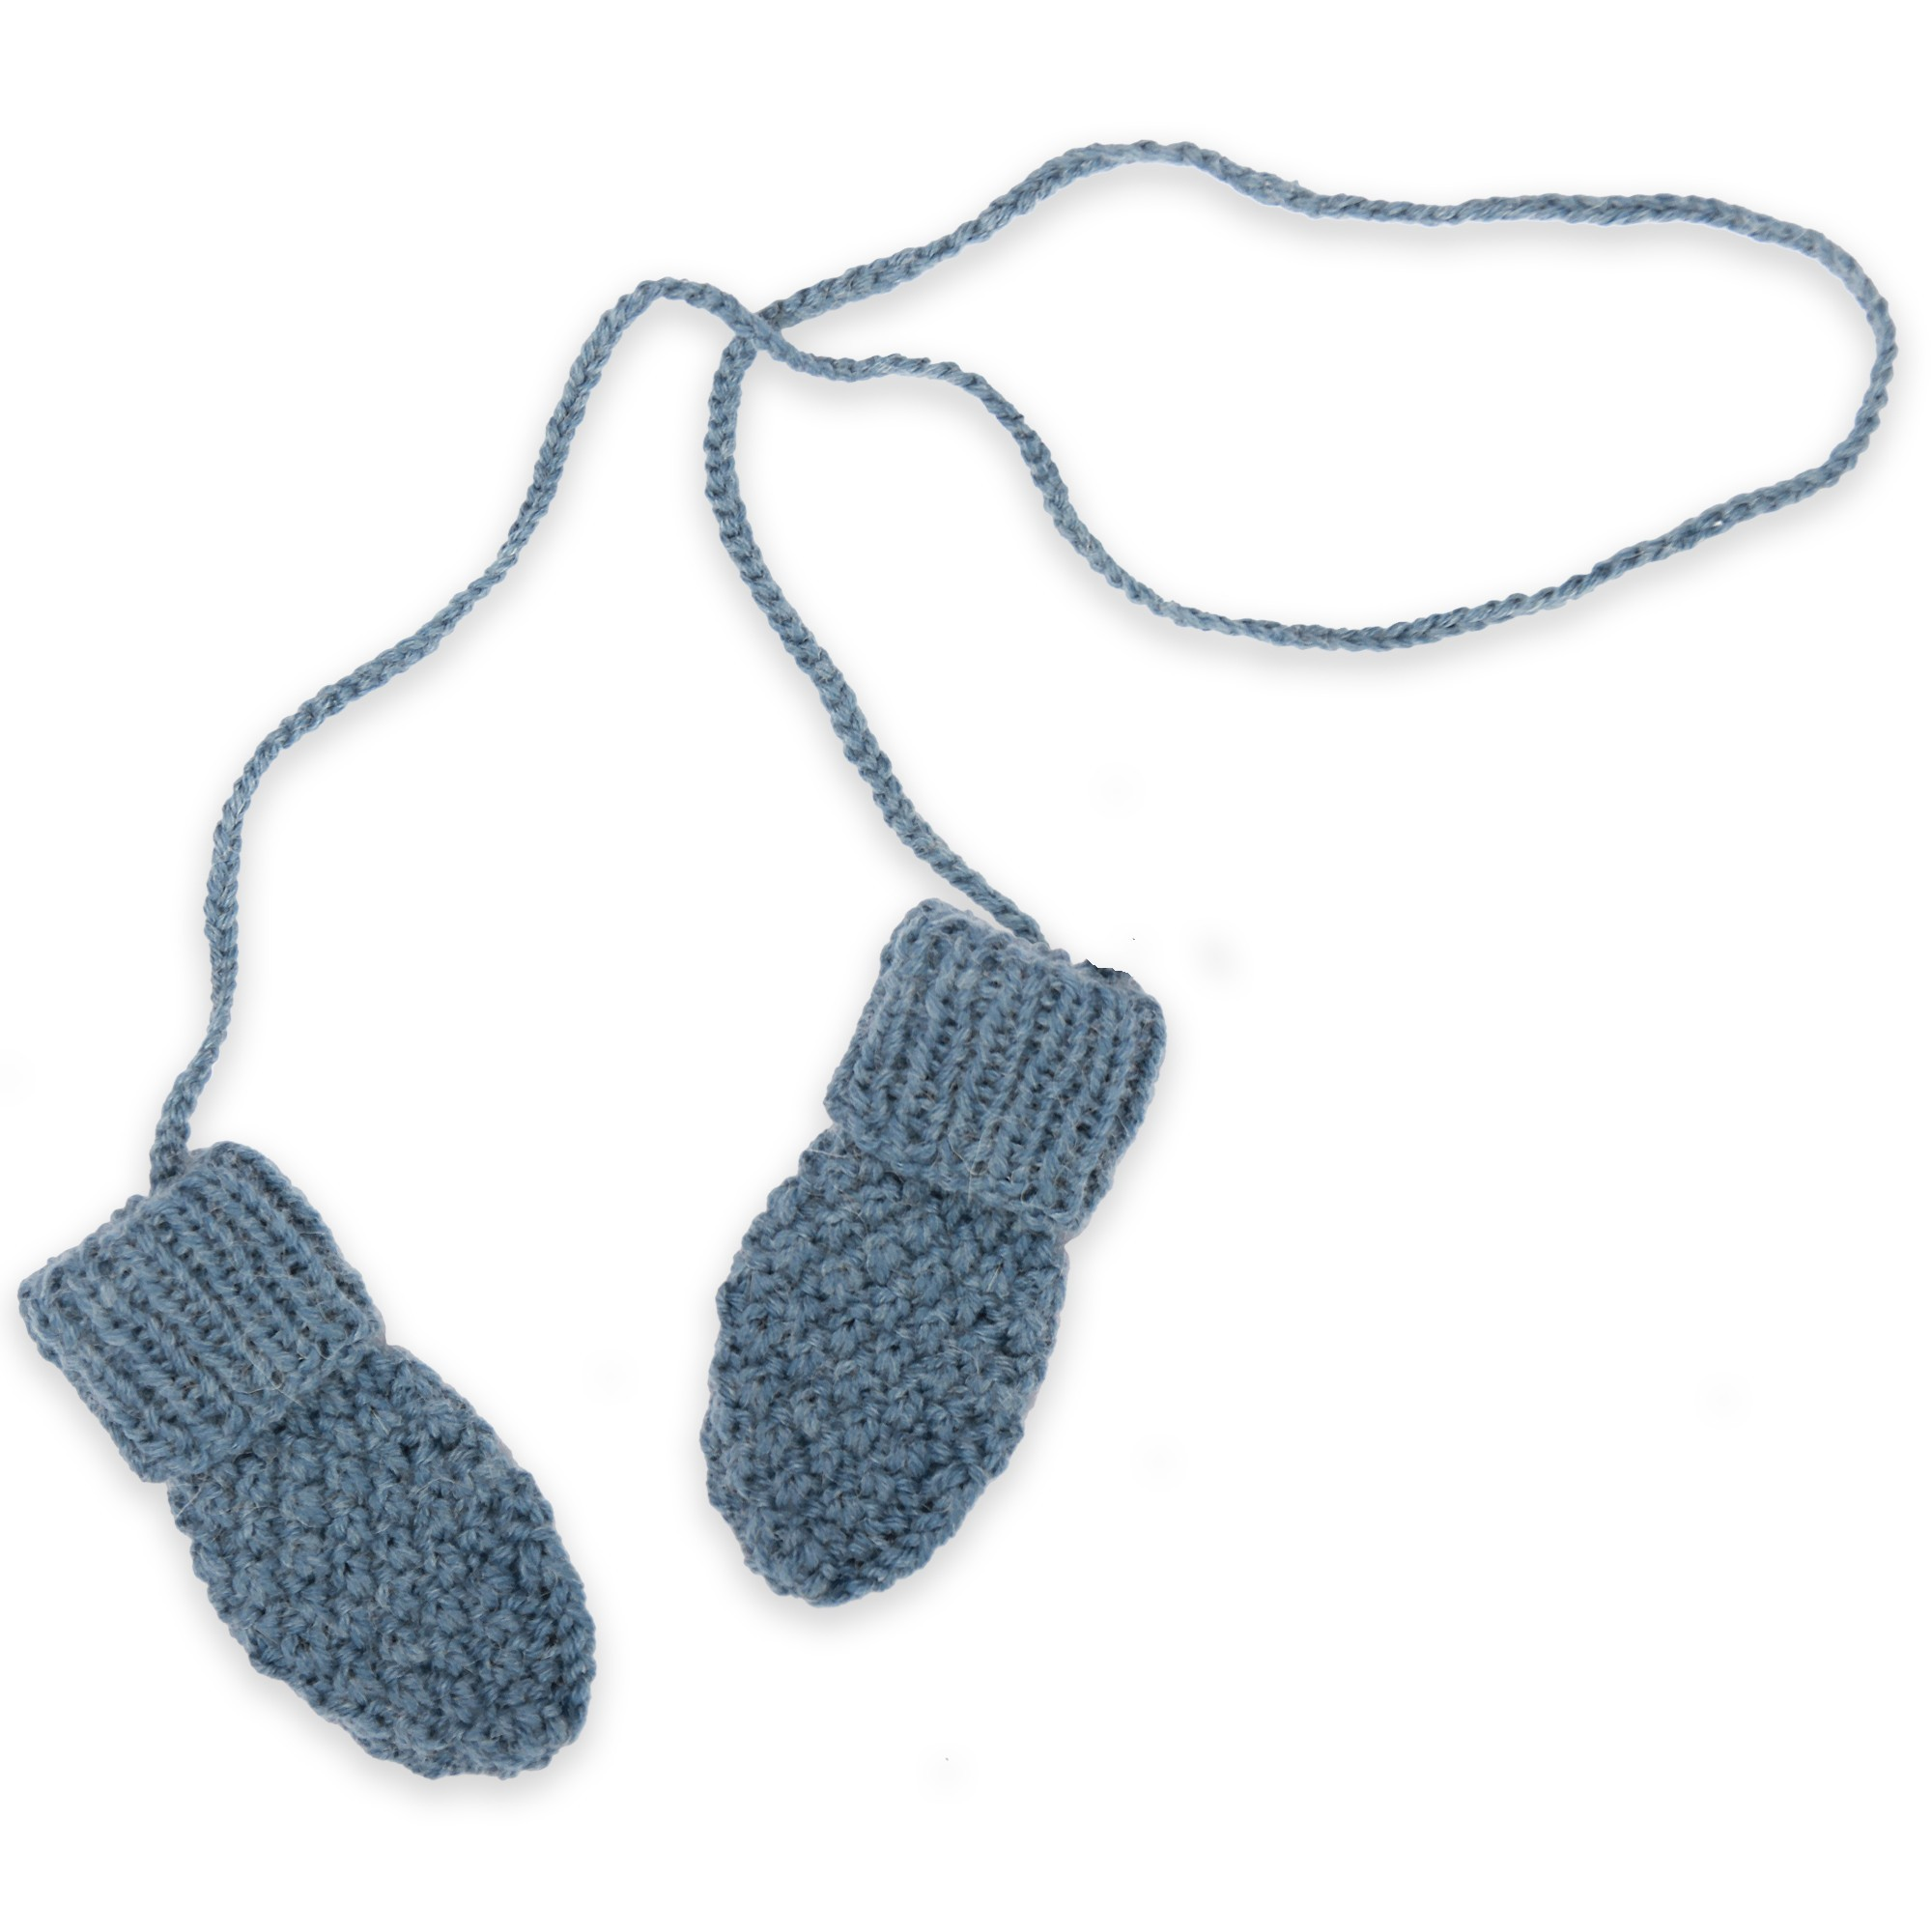 Baby mittens / gloves knitted in moss stitch made from wool and alpaca - Petrol blue